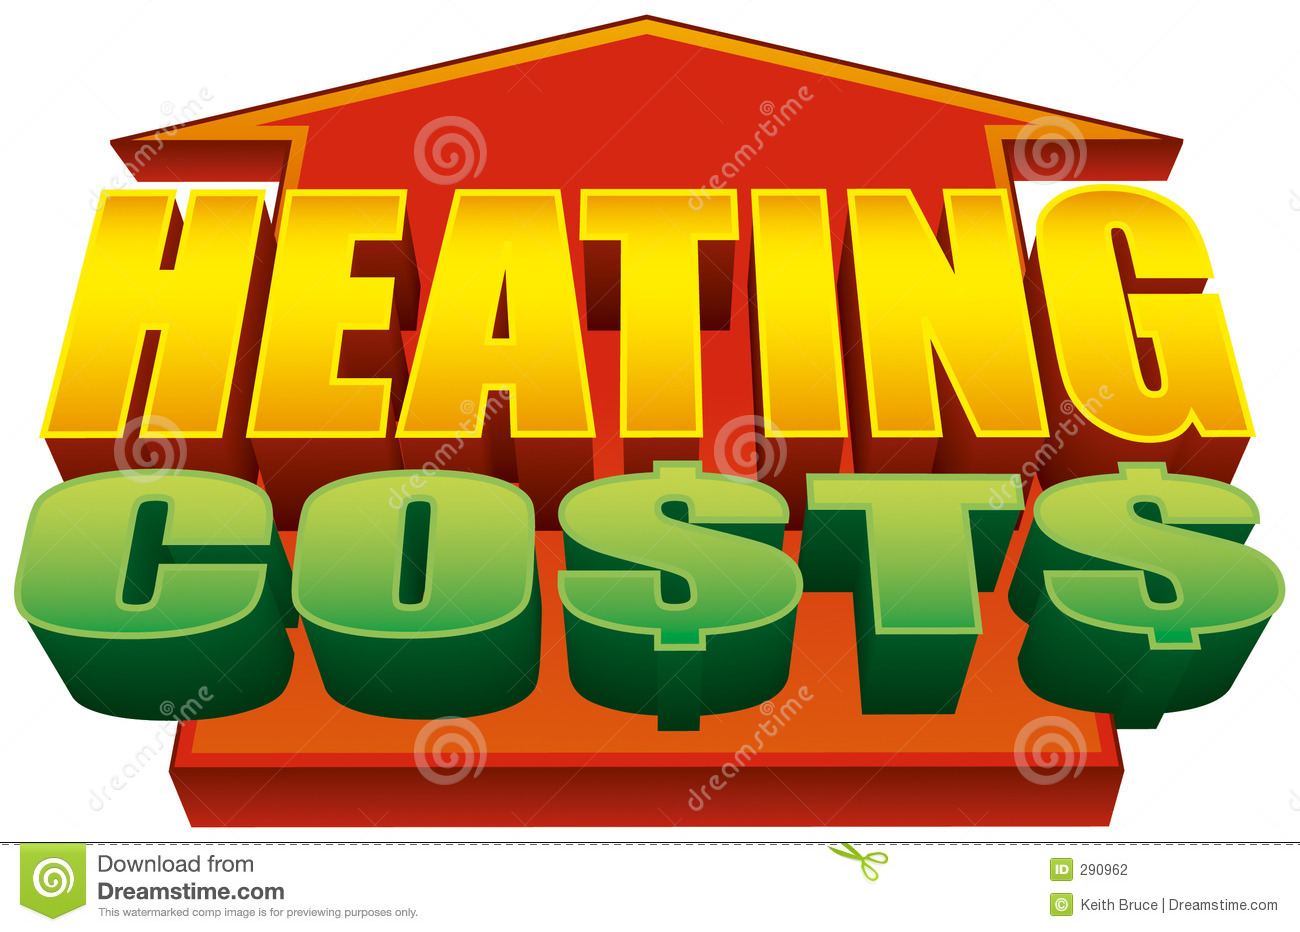 Heating Costs Rising Graphic 2 Stock Photography.